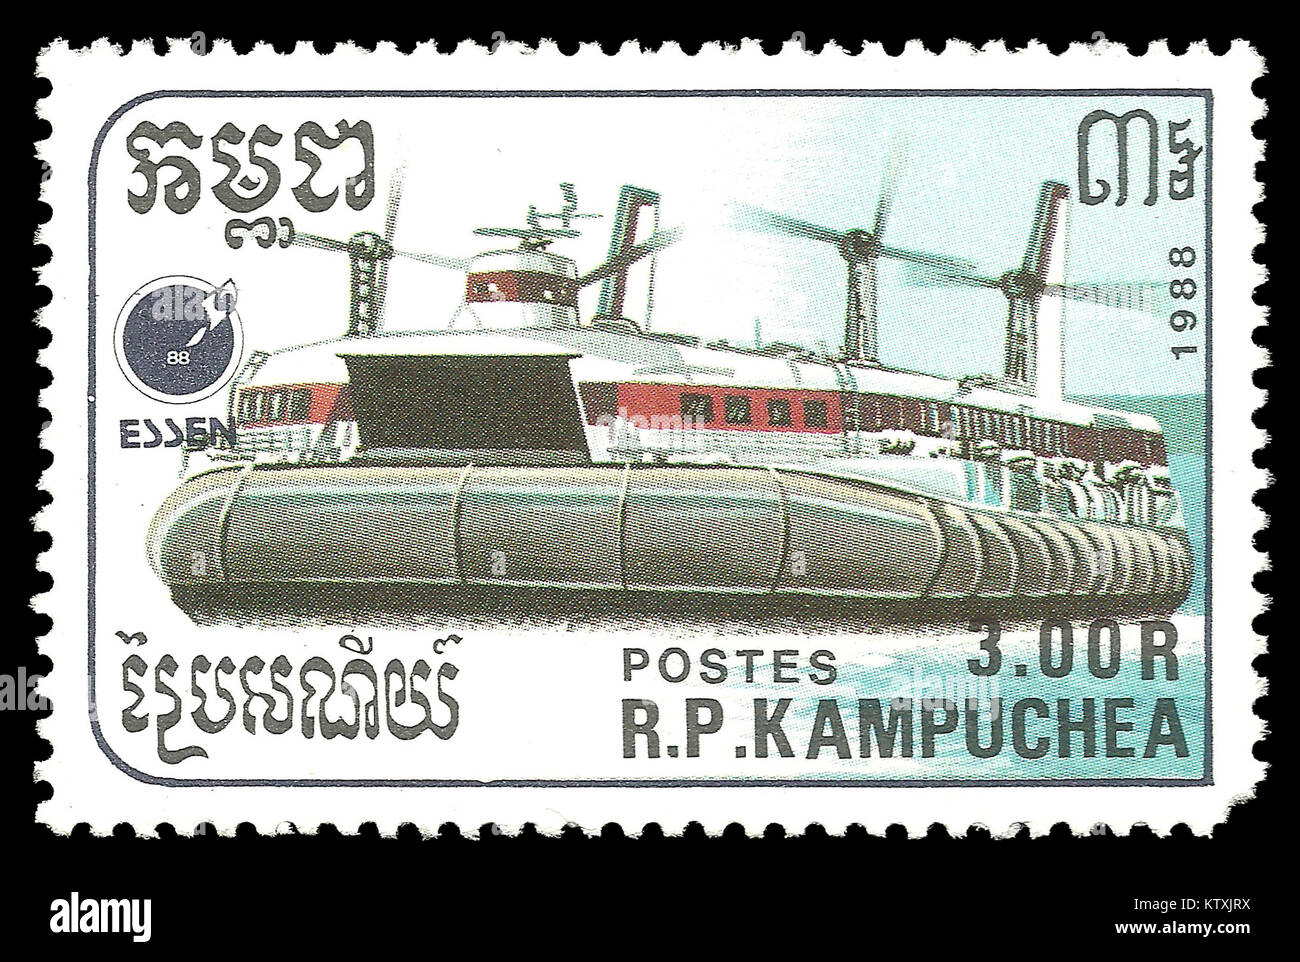 Cambodia - stamp 1988: Color edition on topic of Ships, shows Hovercraft Stock Photo